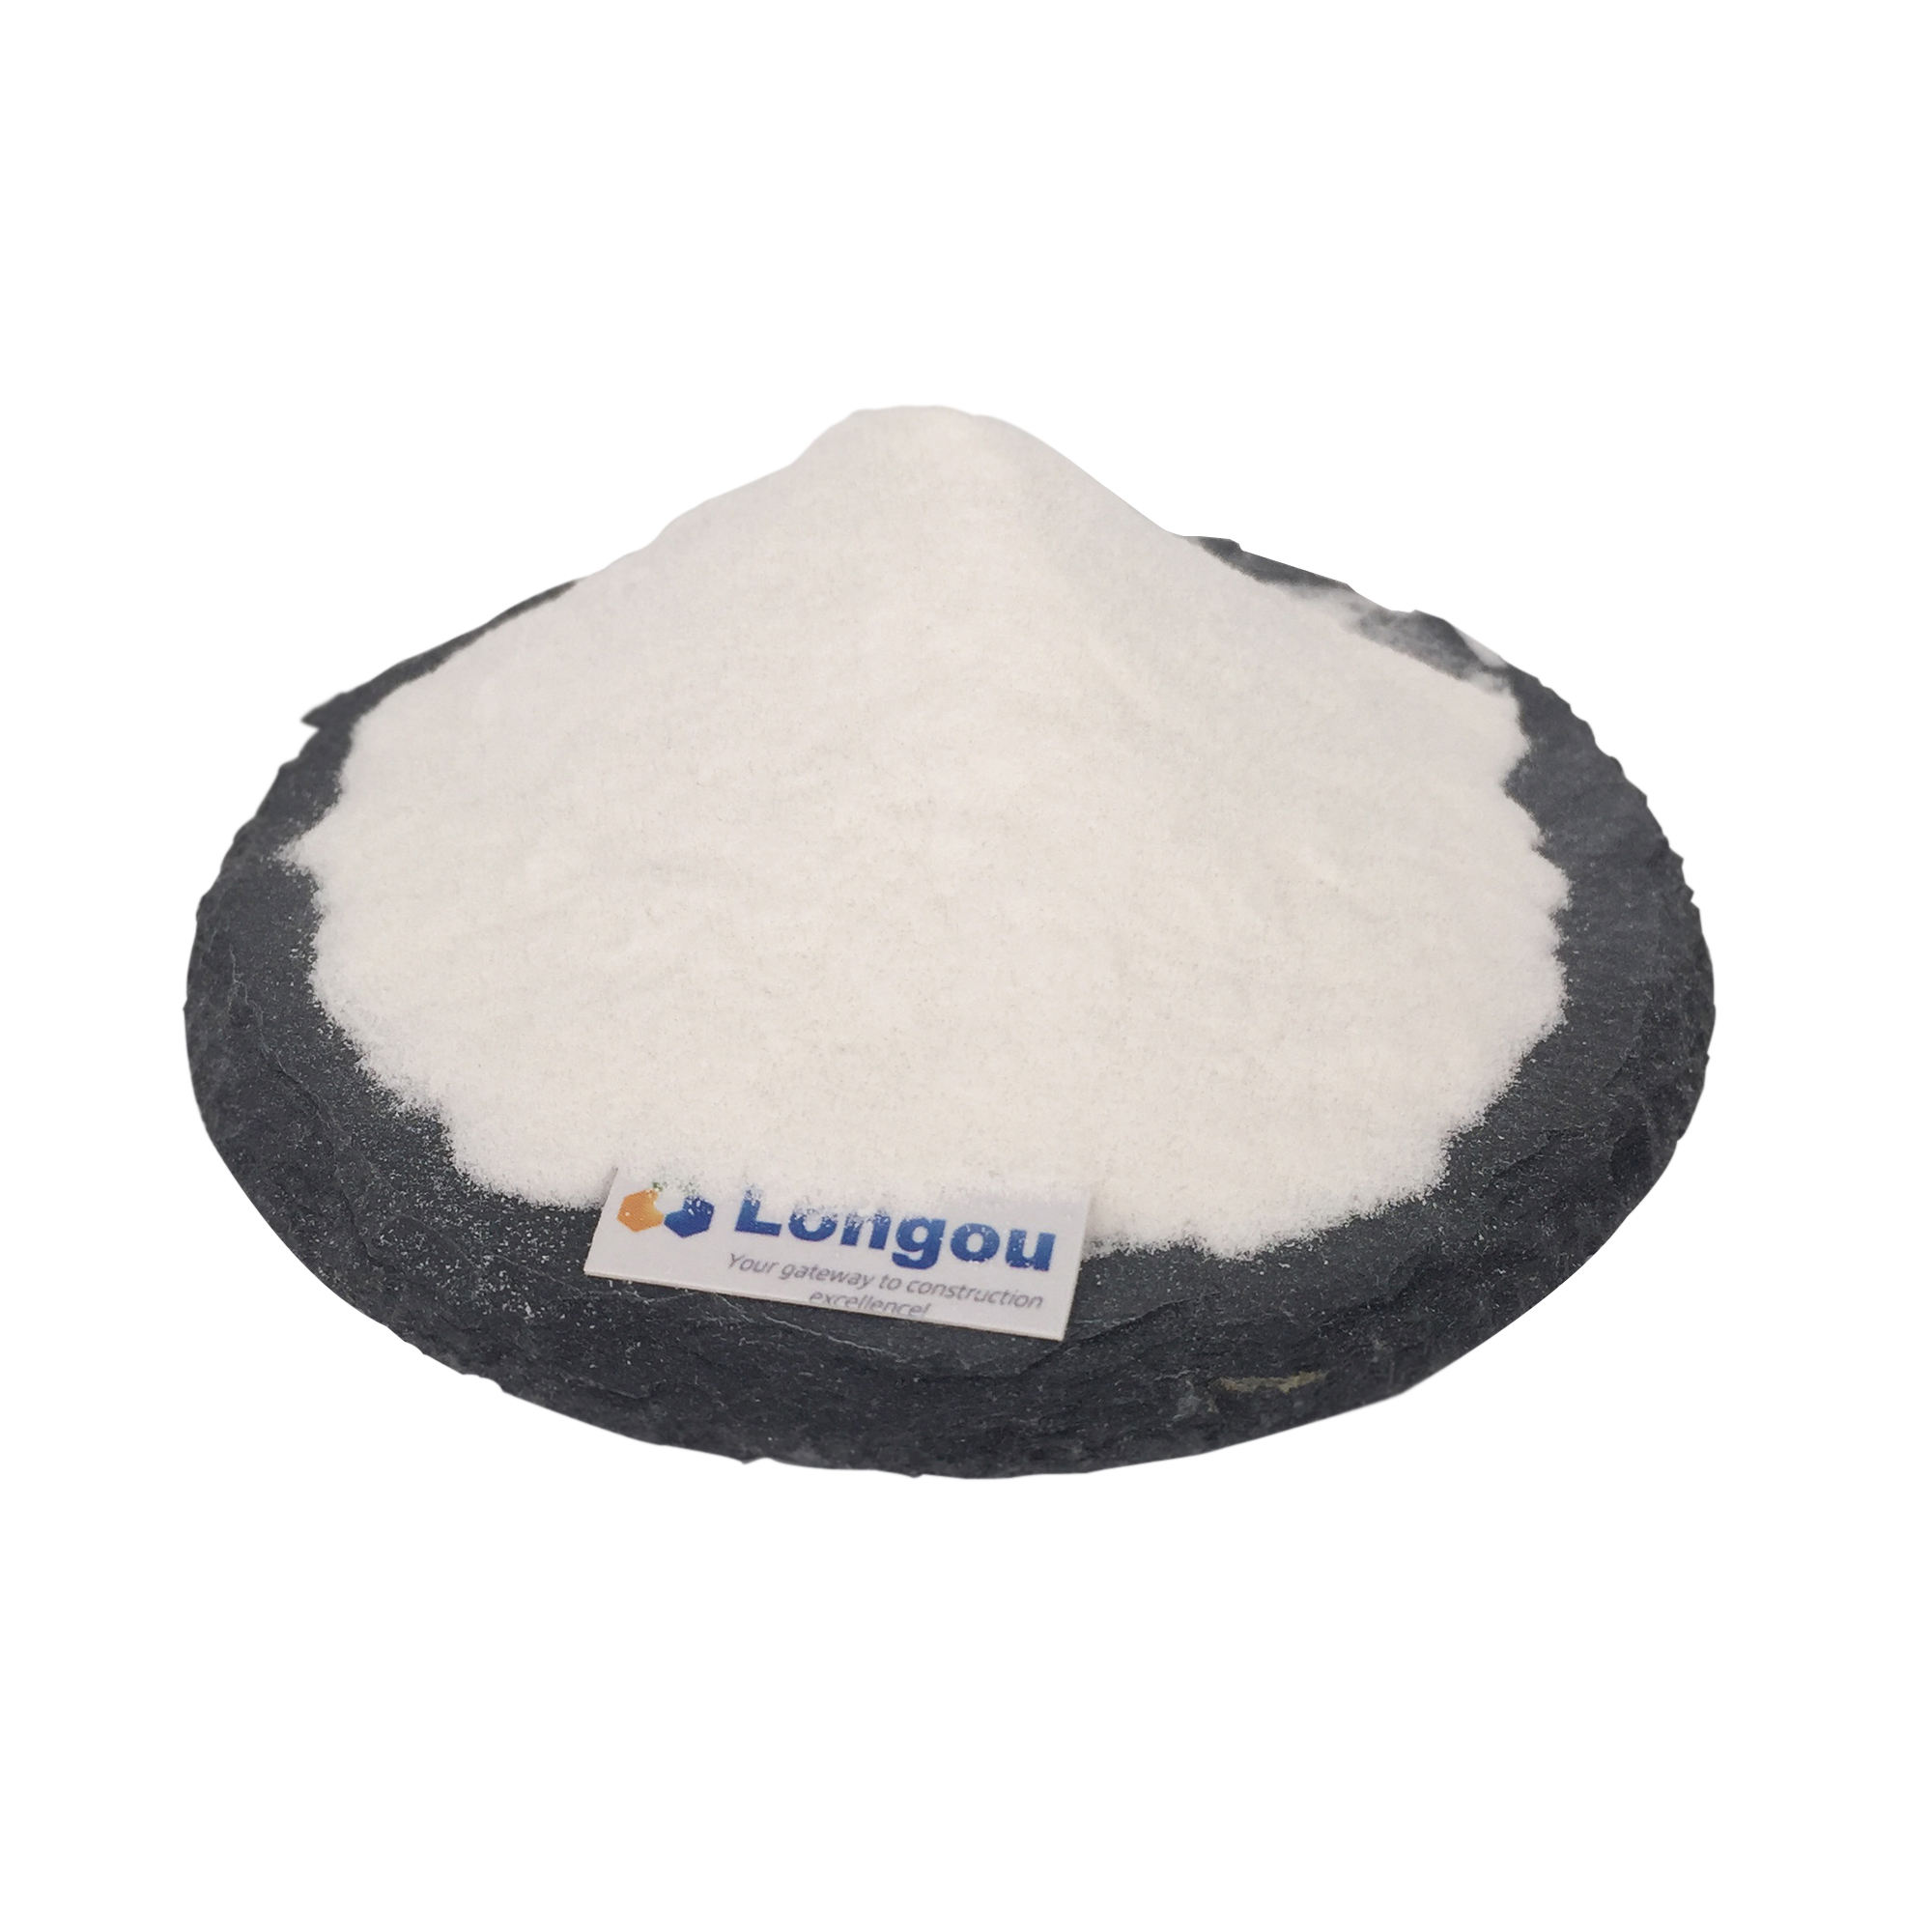 Hpmc Hydroxypropyl Methyl Cellulose 200000 Cps Bouw Chemische additieven HPMC